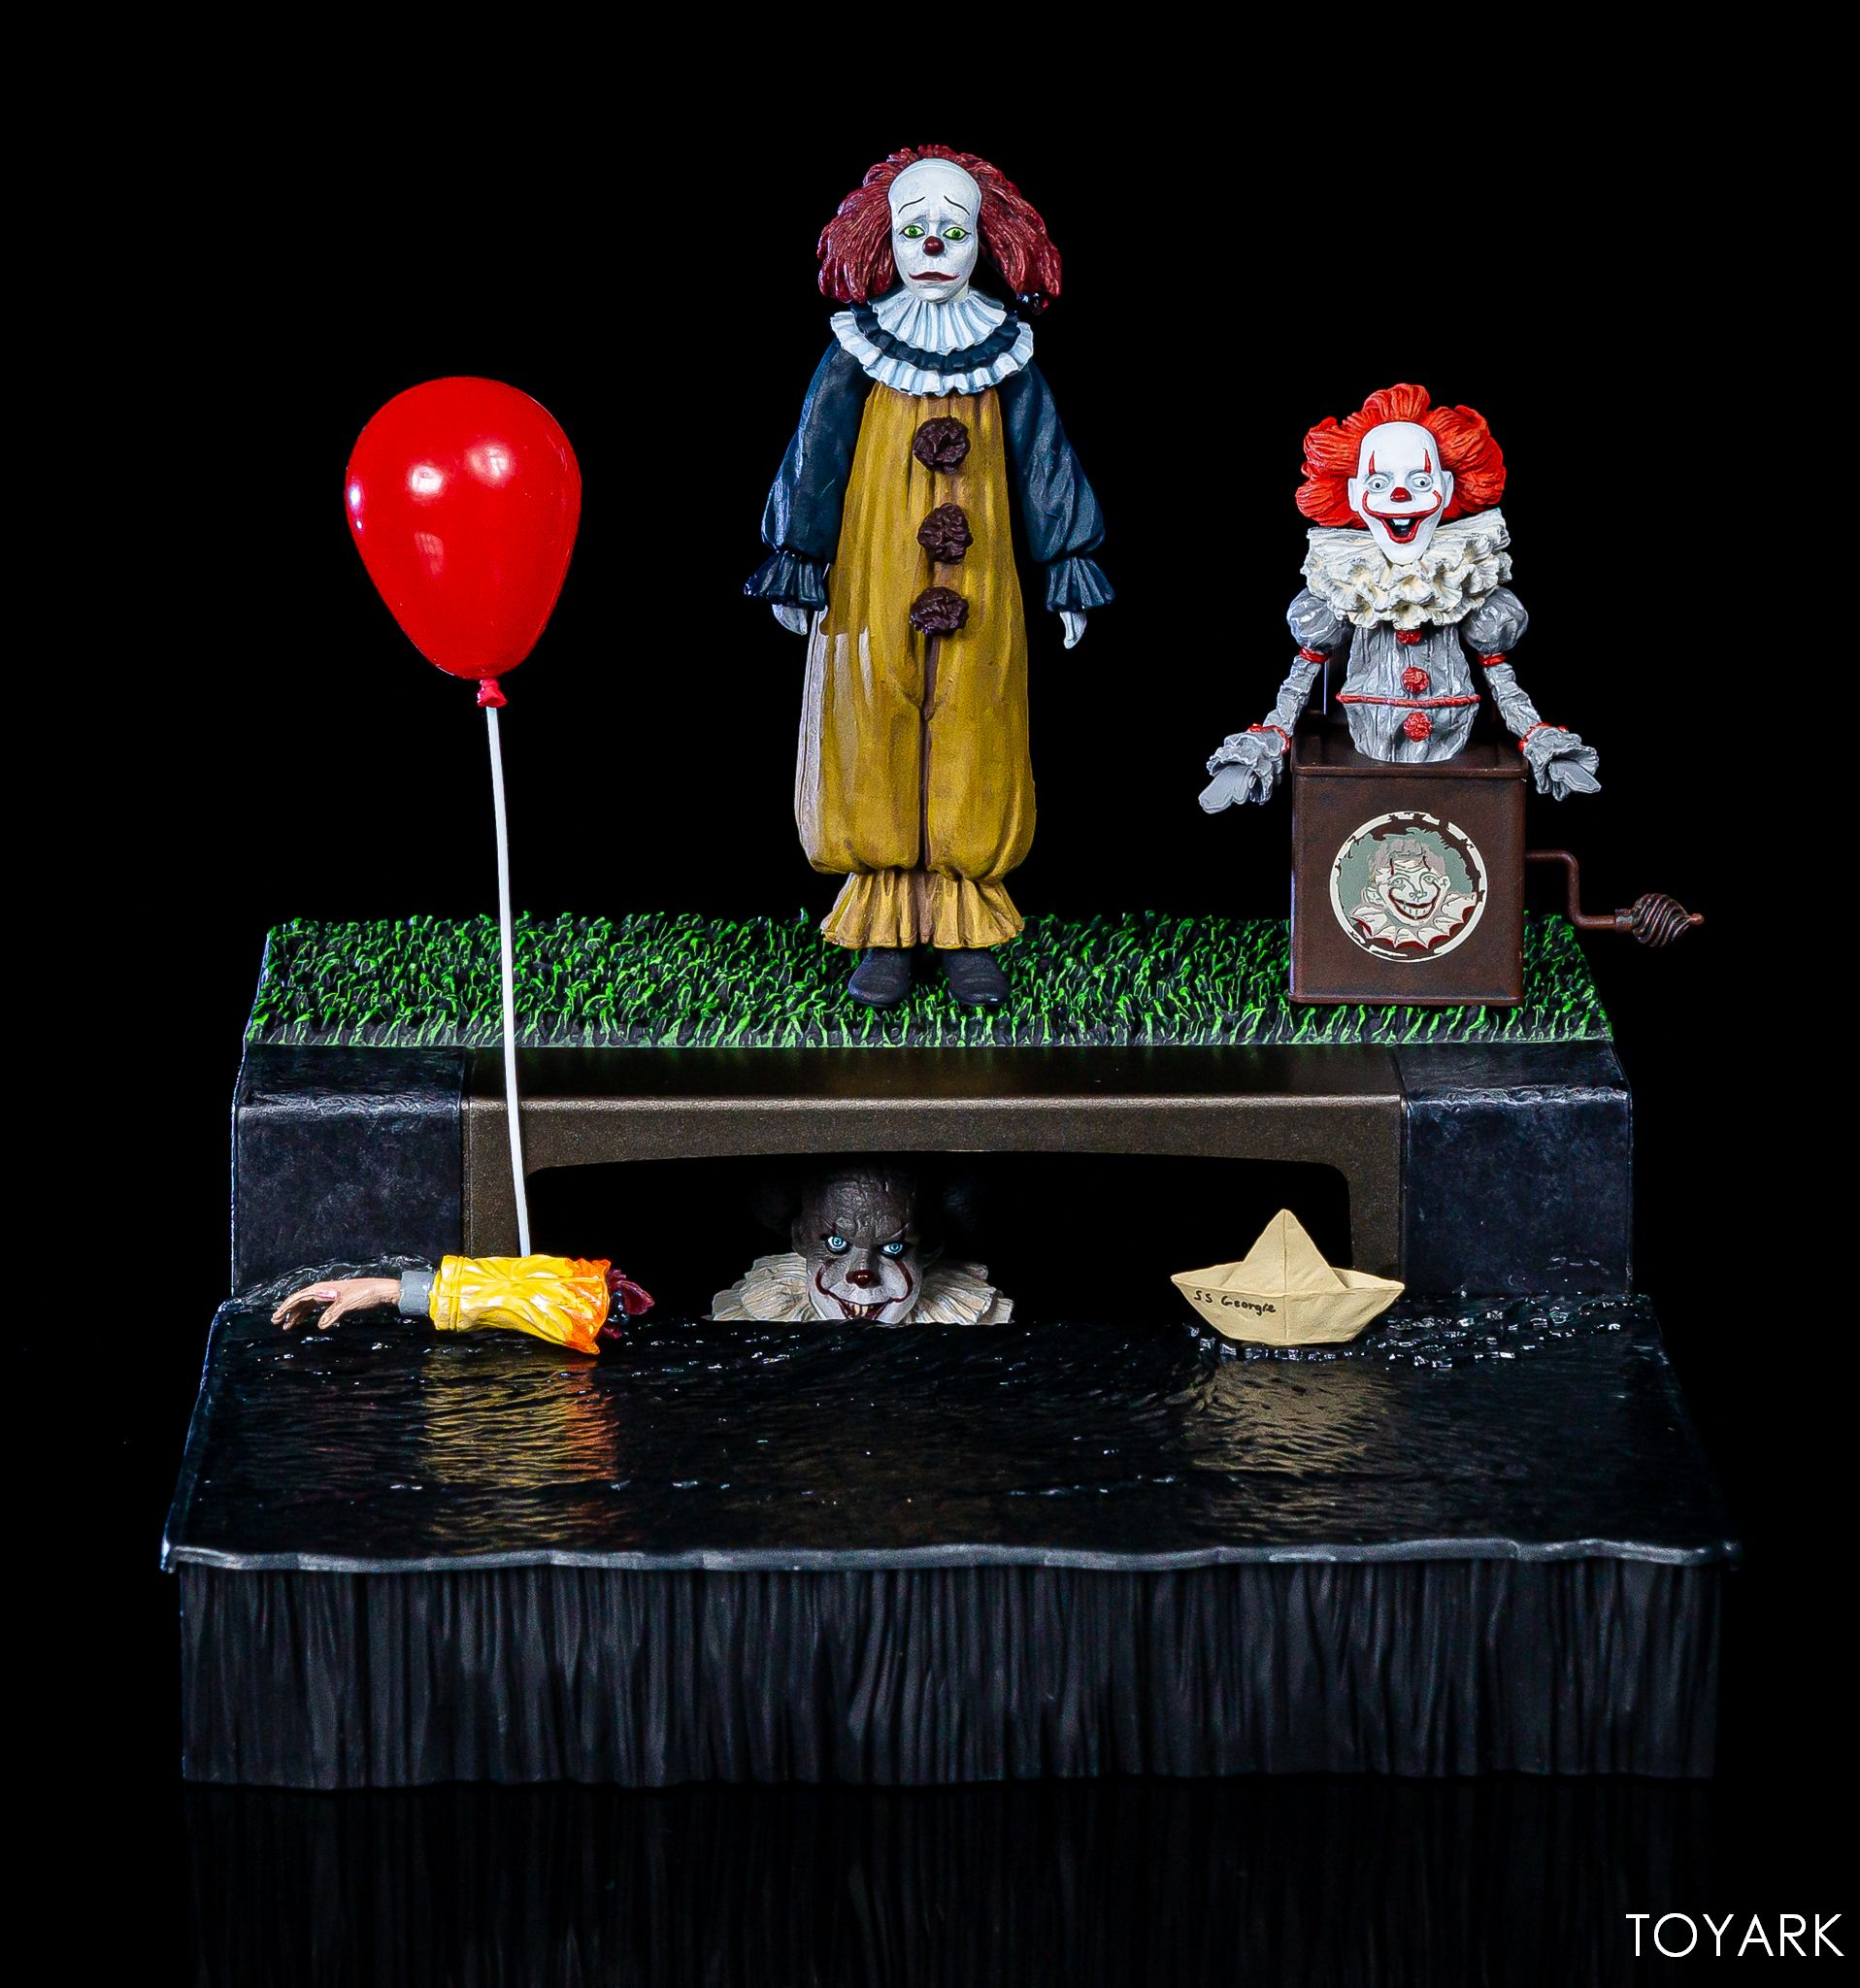 https://news.toyark.com/wp-content/uploads/sites/4/2019/05/NECA-Pennywise-Accessory-Set-035.jpg